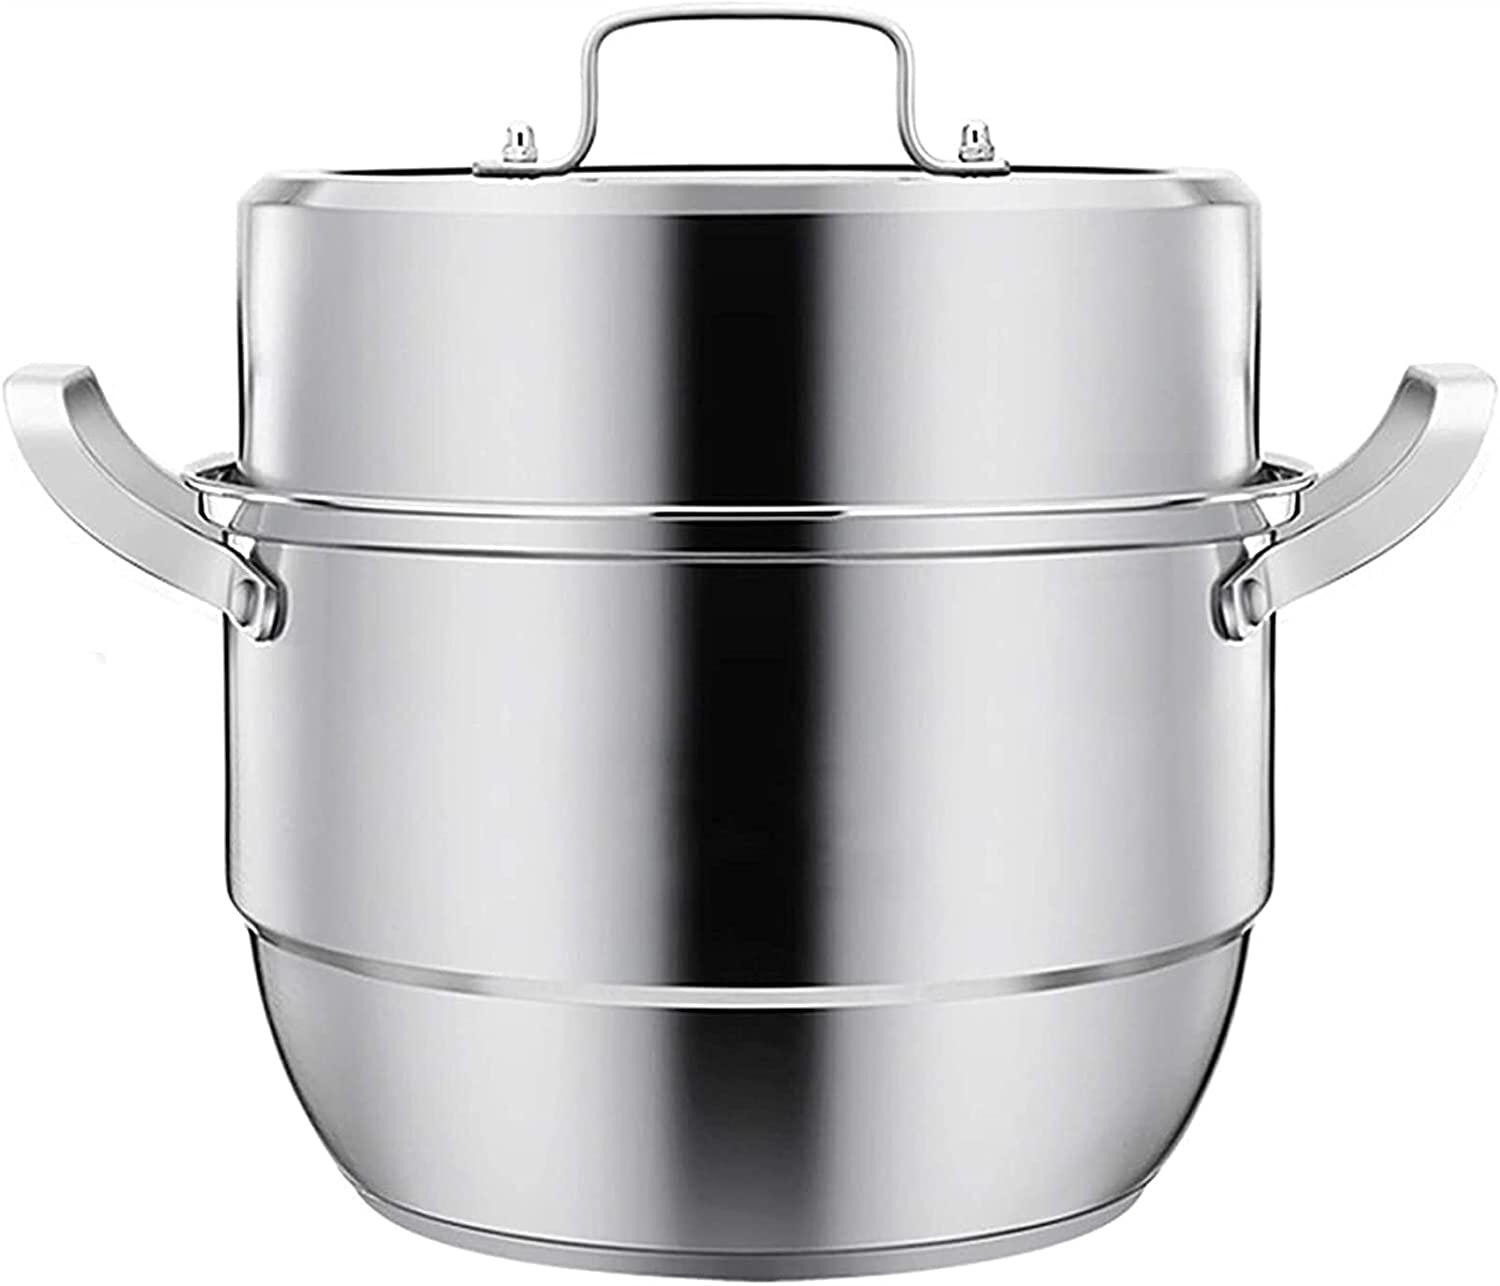 Stainless Steel Steamer Discount is also underway Some reservation Pot C Food Steaming Cookware